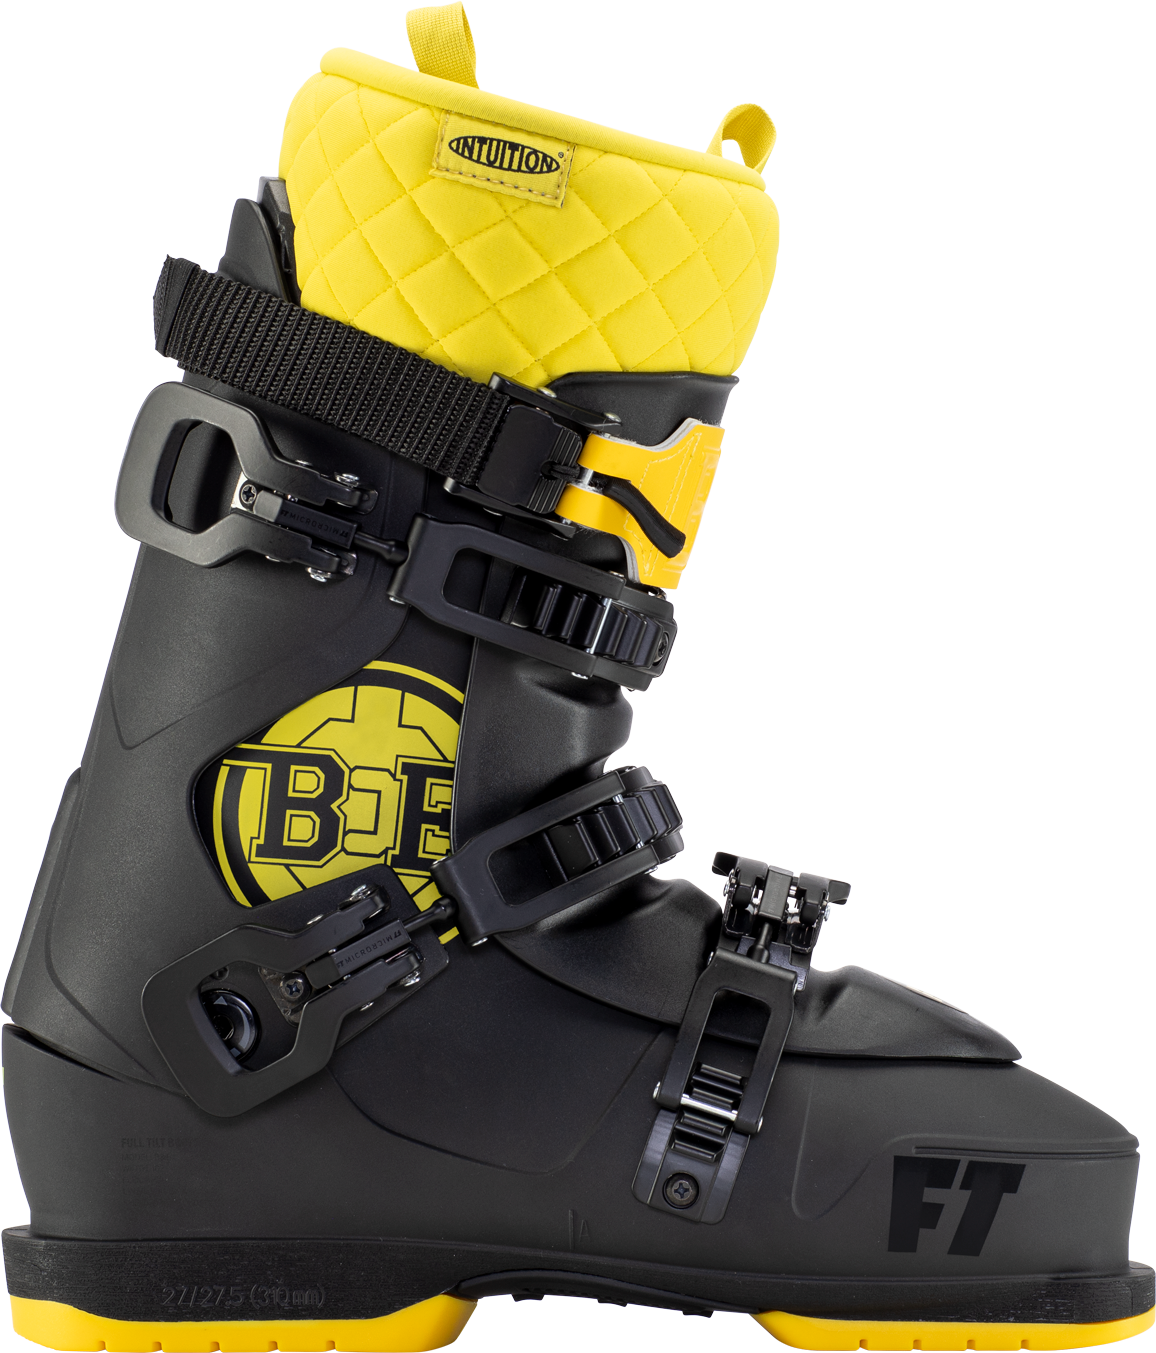 2021 Full Tilt B&E Pro LTD Men's Ski Boots